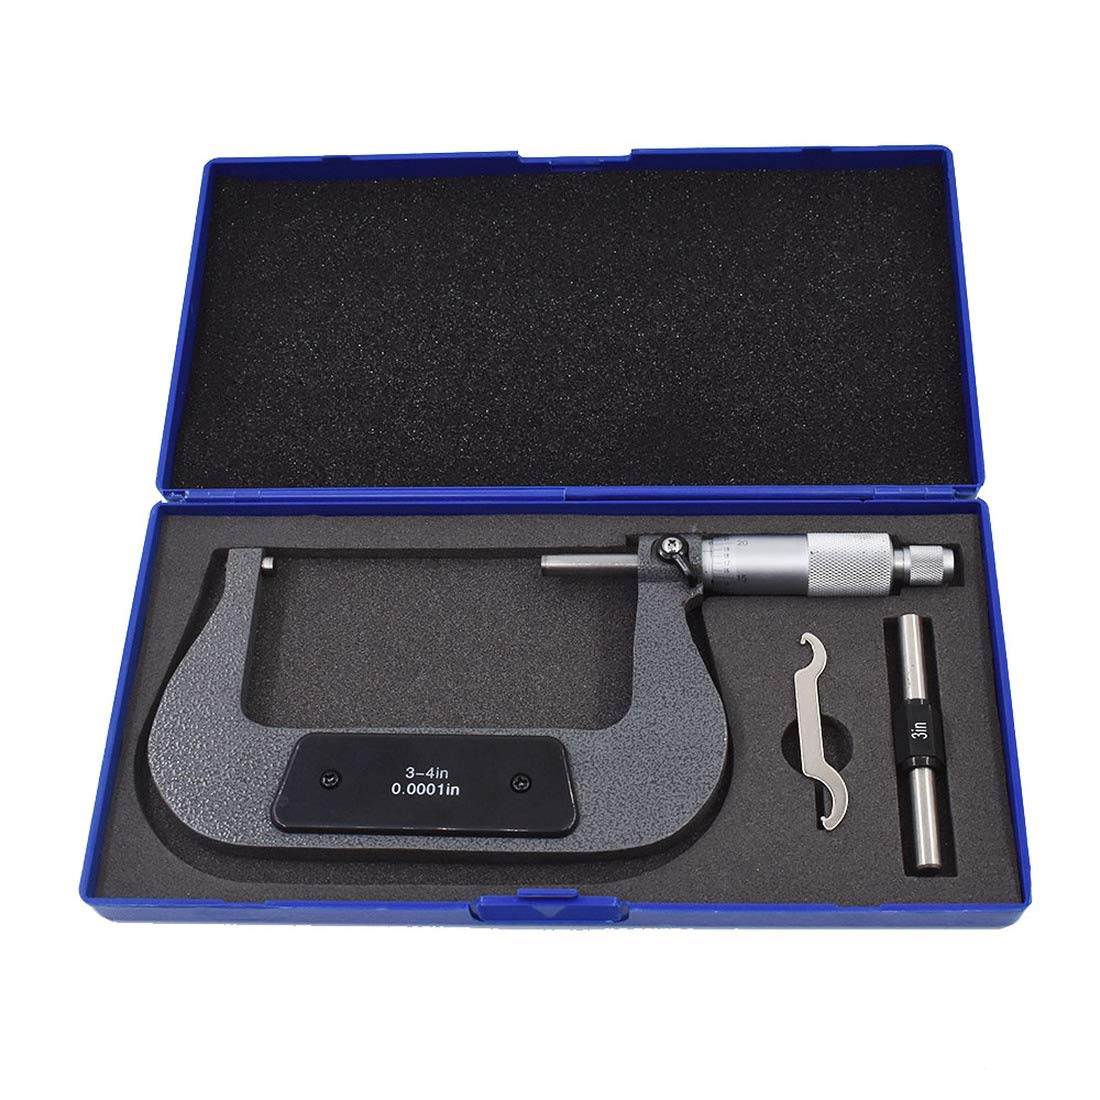 3-4 Precision Outside Micrometer 0.0001 Carbide Tipped for Precision Measurement Work